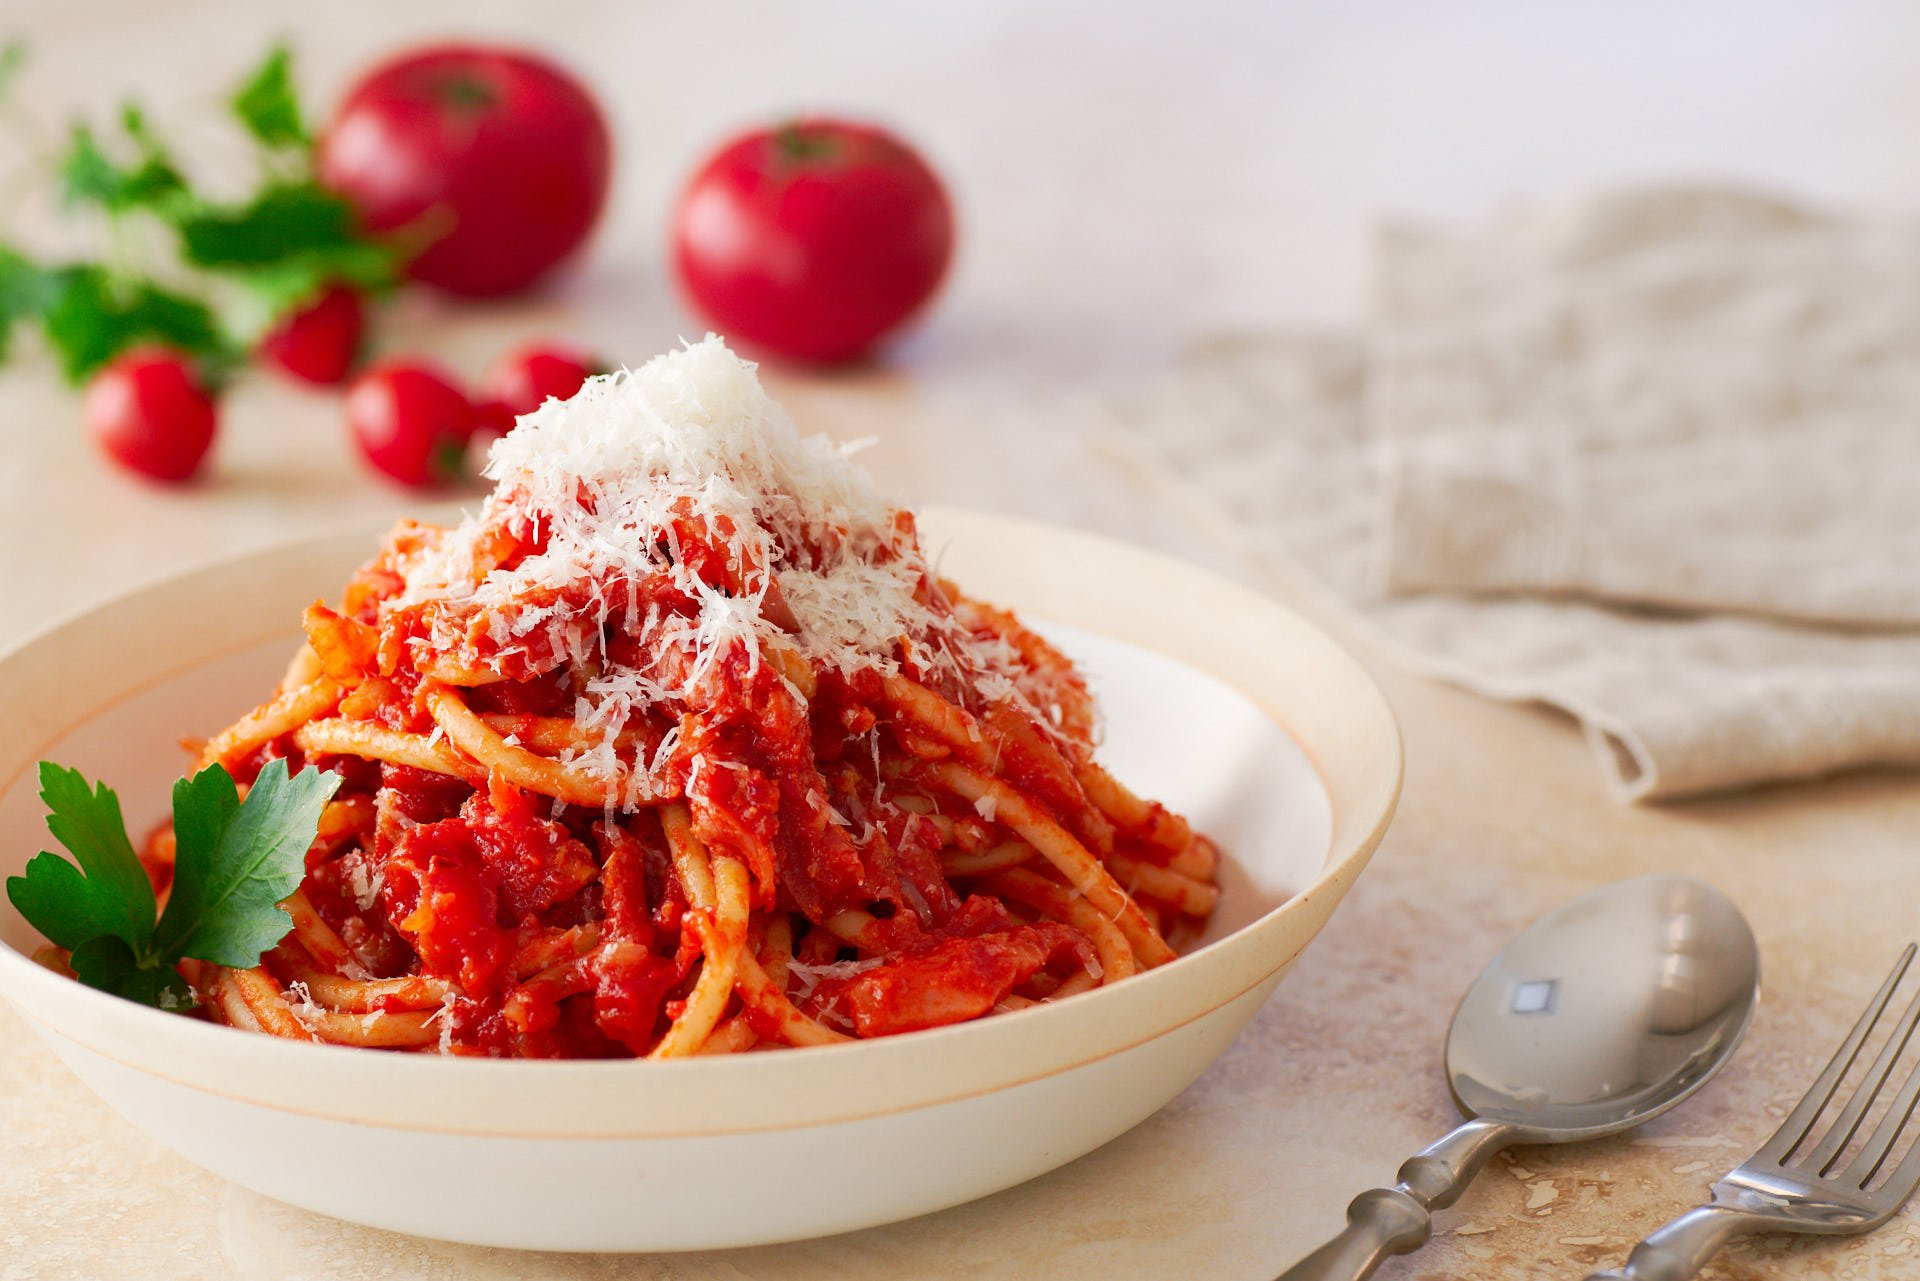 Loaded with Guanciale and Pecorino Romano, Bucatini all'Amatriciana is a quick weeknight pasta that has an unbeatable taste to effort ratio.